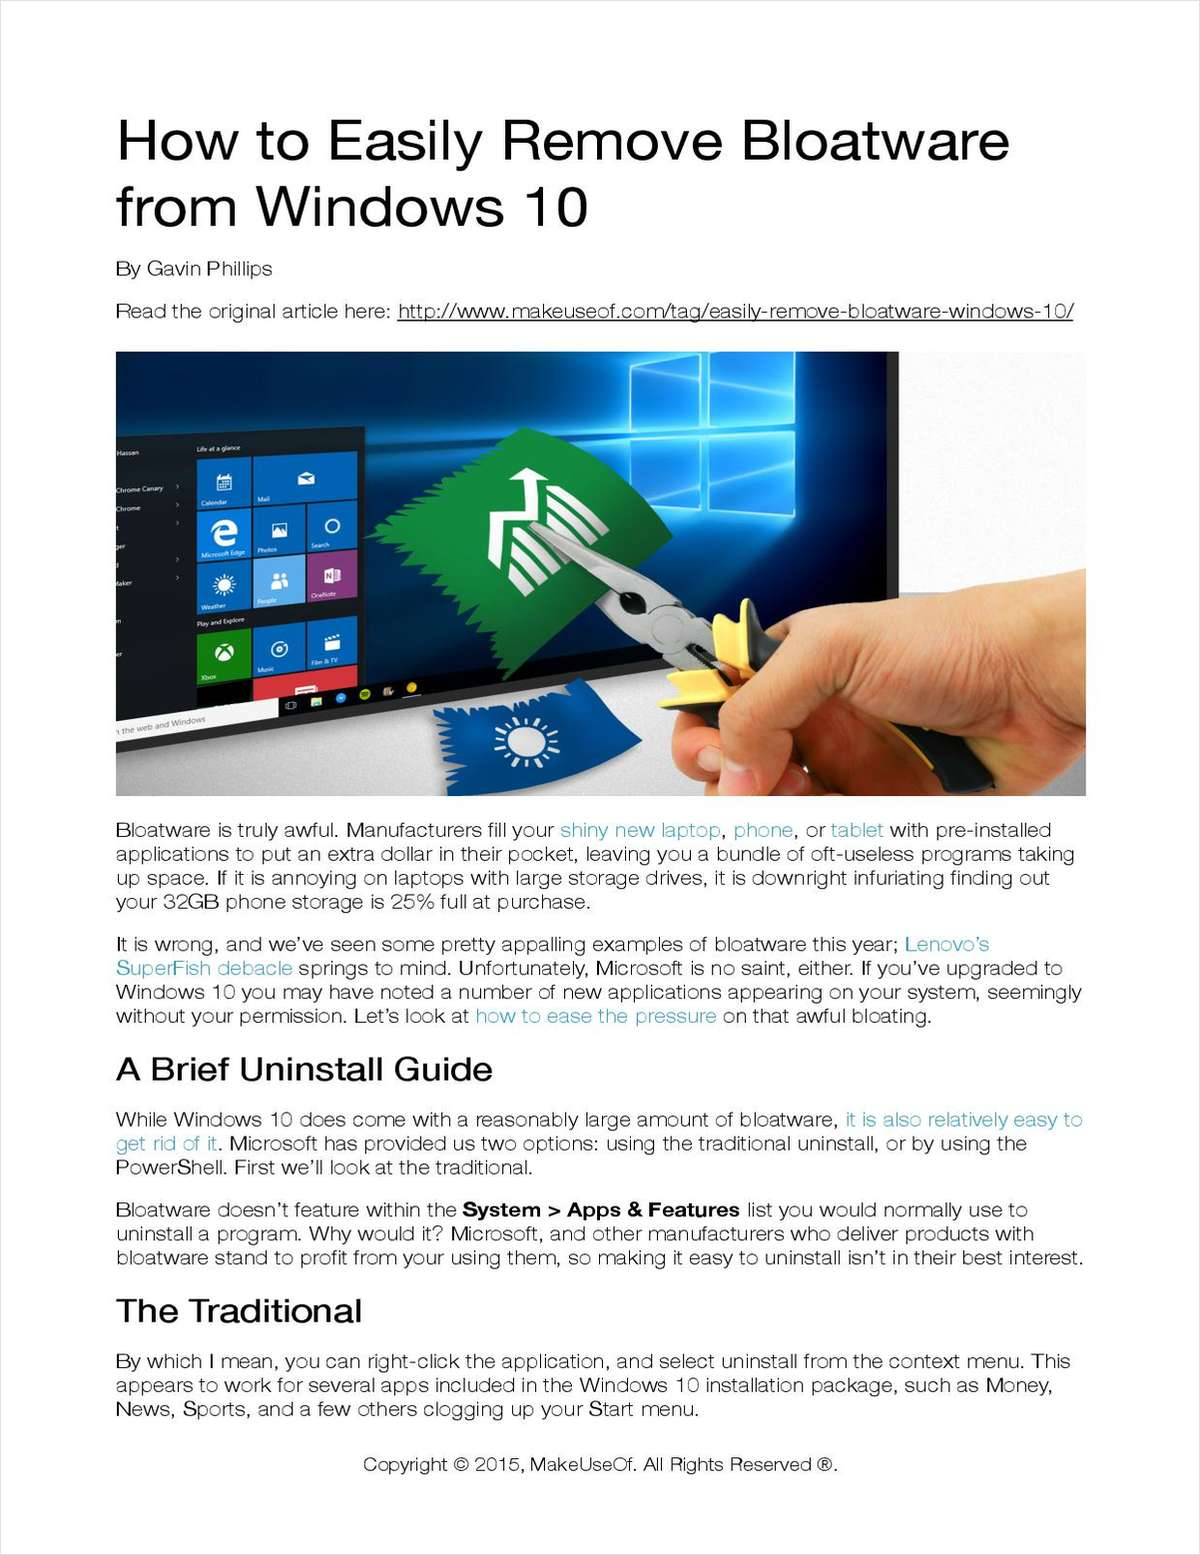 How to Easily Remove Bloatware from Windows 10